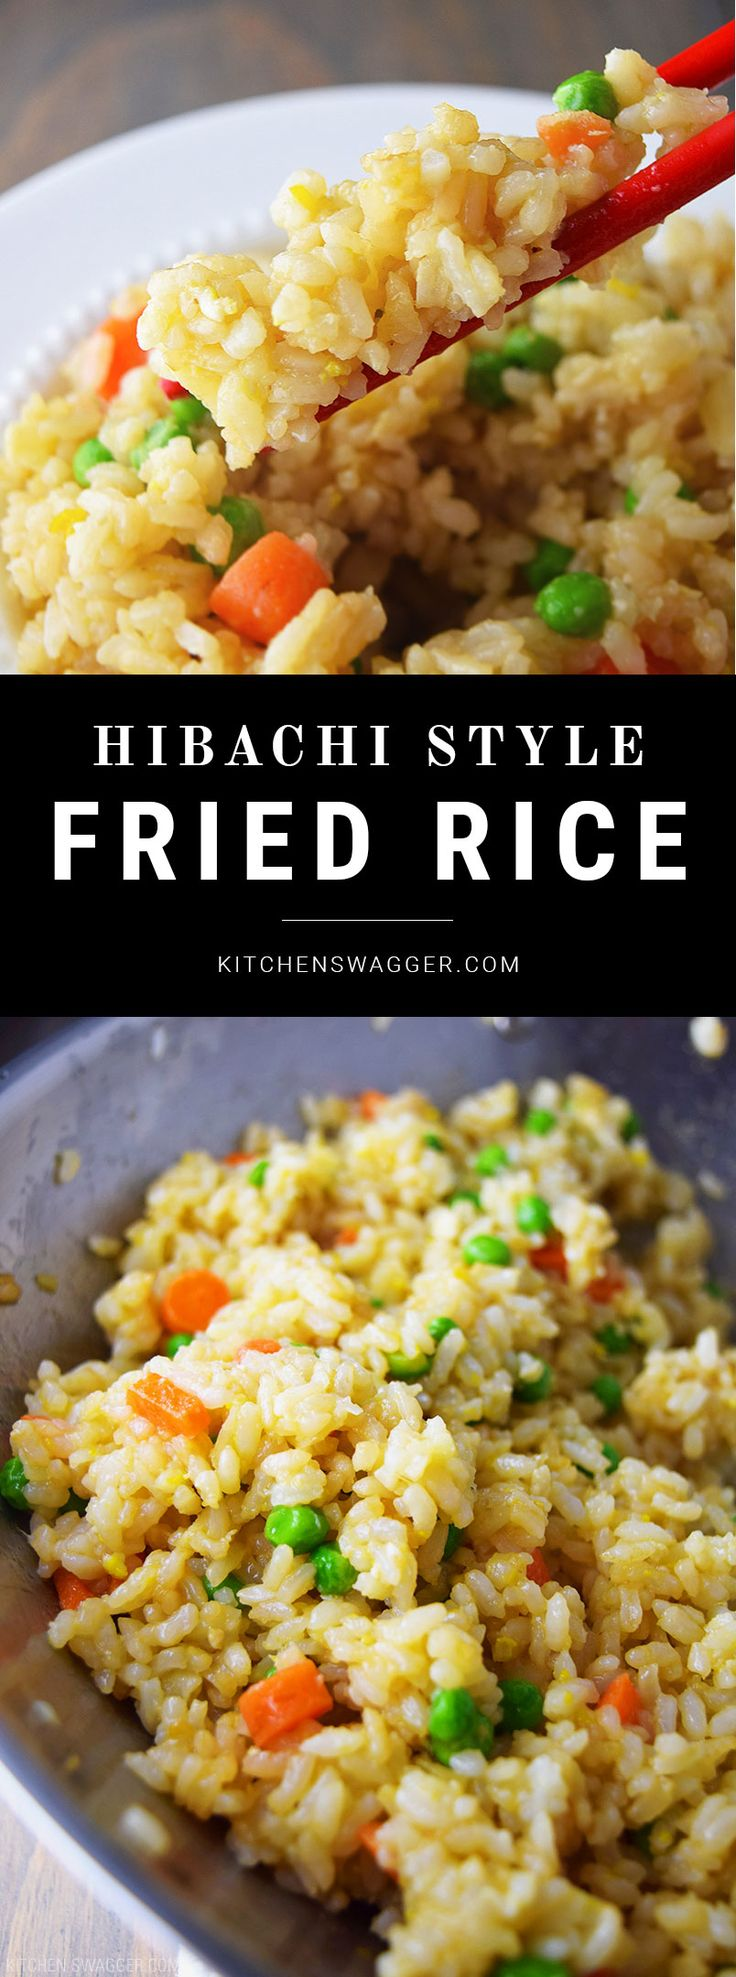 Hibachi Style Fried Rice-  Throw everything in a wok and cook on high heat for 5-7 minutes. It's that easy.